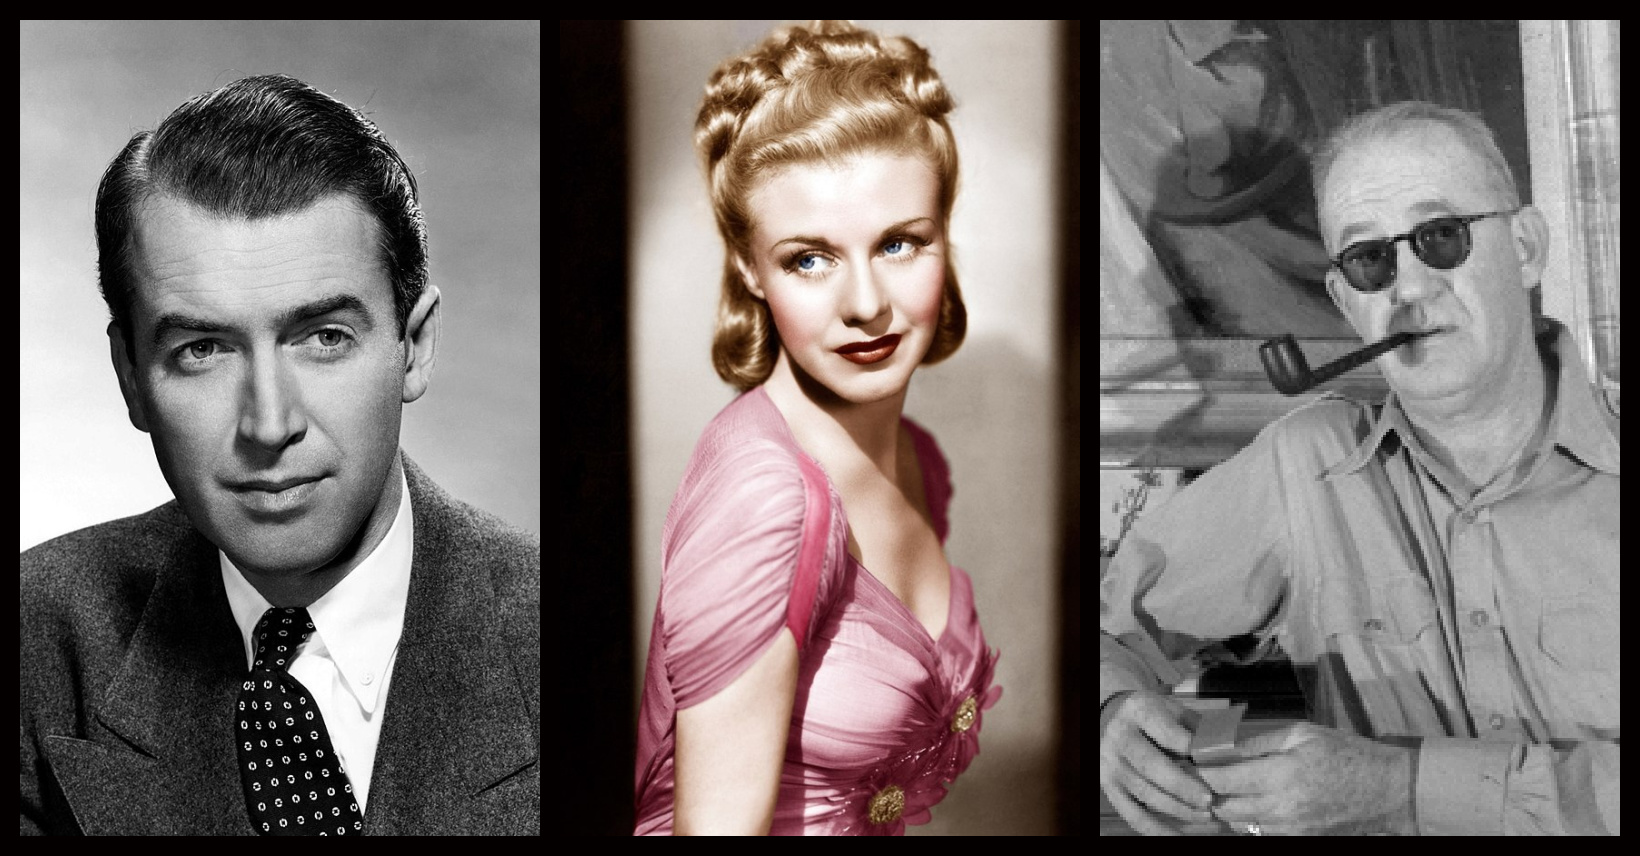 Winners of the Academy Awards, 27 February 1941: James Stewart (1948 publicity photo); Ginger Rogers (1937 publicity photo); John Ford, 1946 (all photos public domain via Wikipedia)